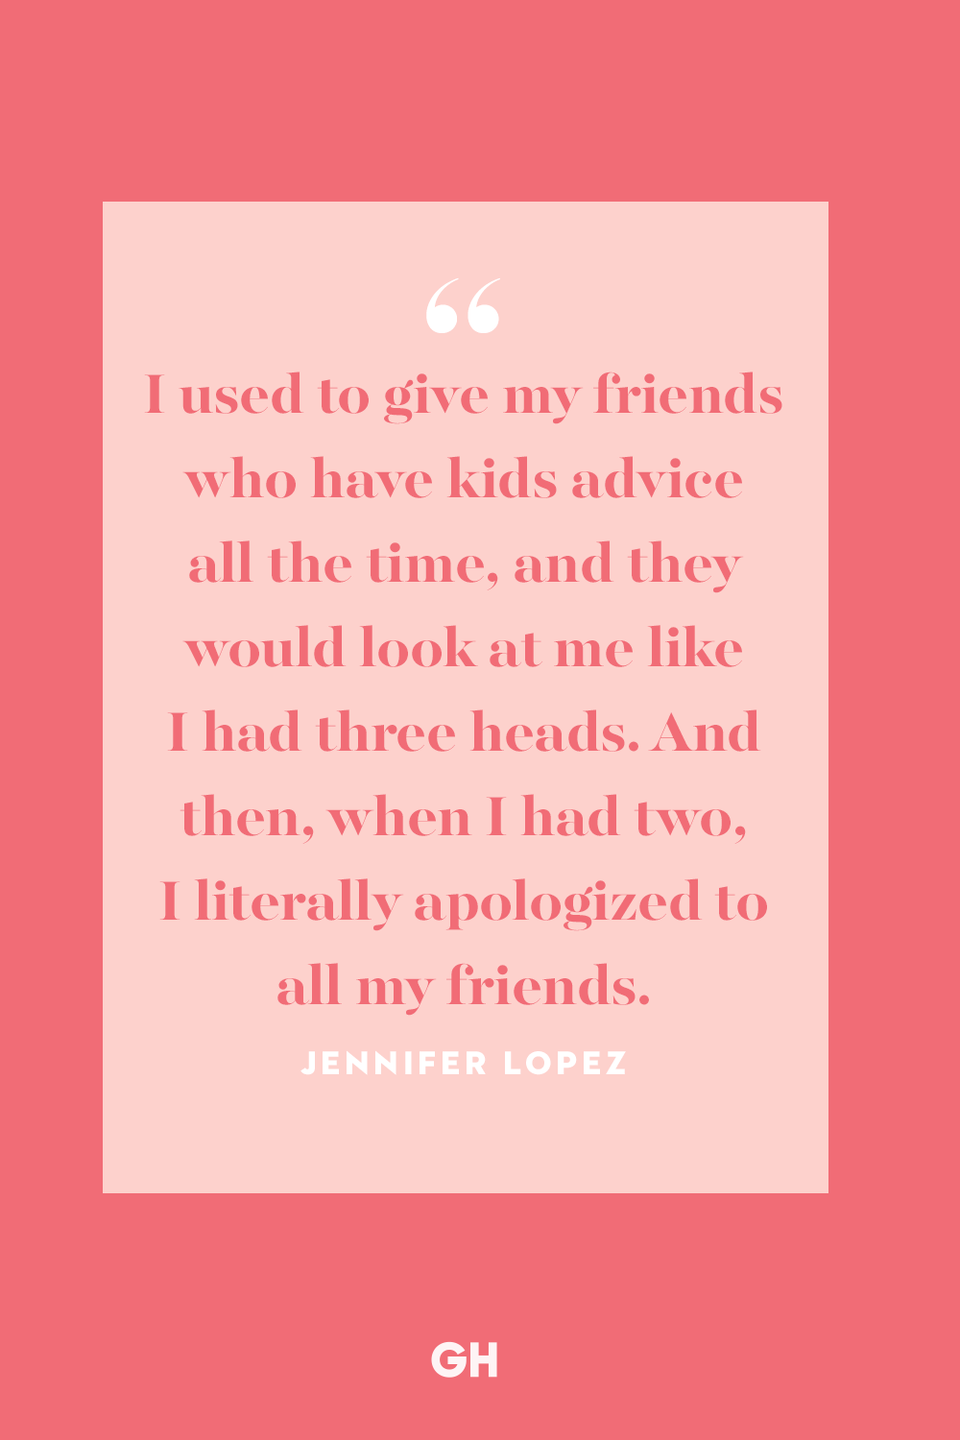 <p>I used to give my friends who have kids advice all the time, and they would look at me like I had three heads. And then, when I had two, I literally apologized to all my friends.</p>